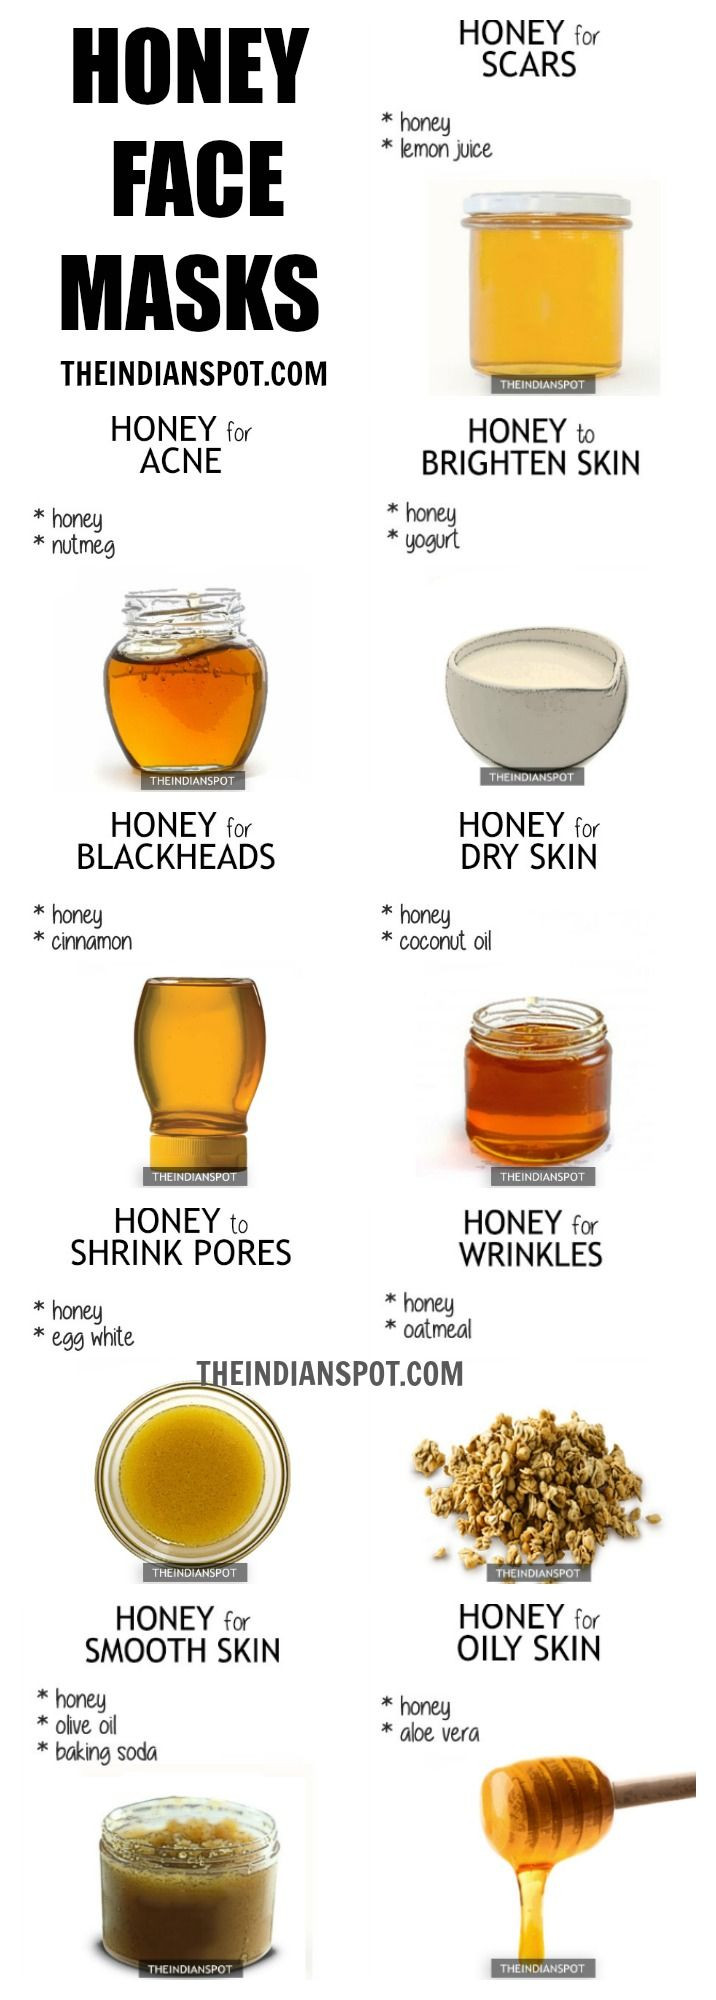 Best ideas about DIY Face Masks With Honey . Save or Pin Best 20 Face ideas on Pinterest Now.